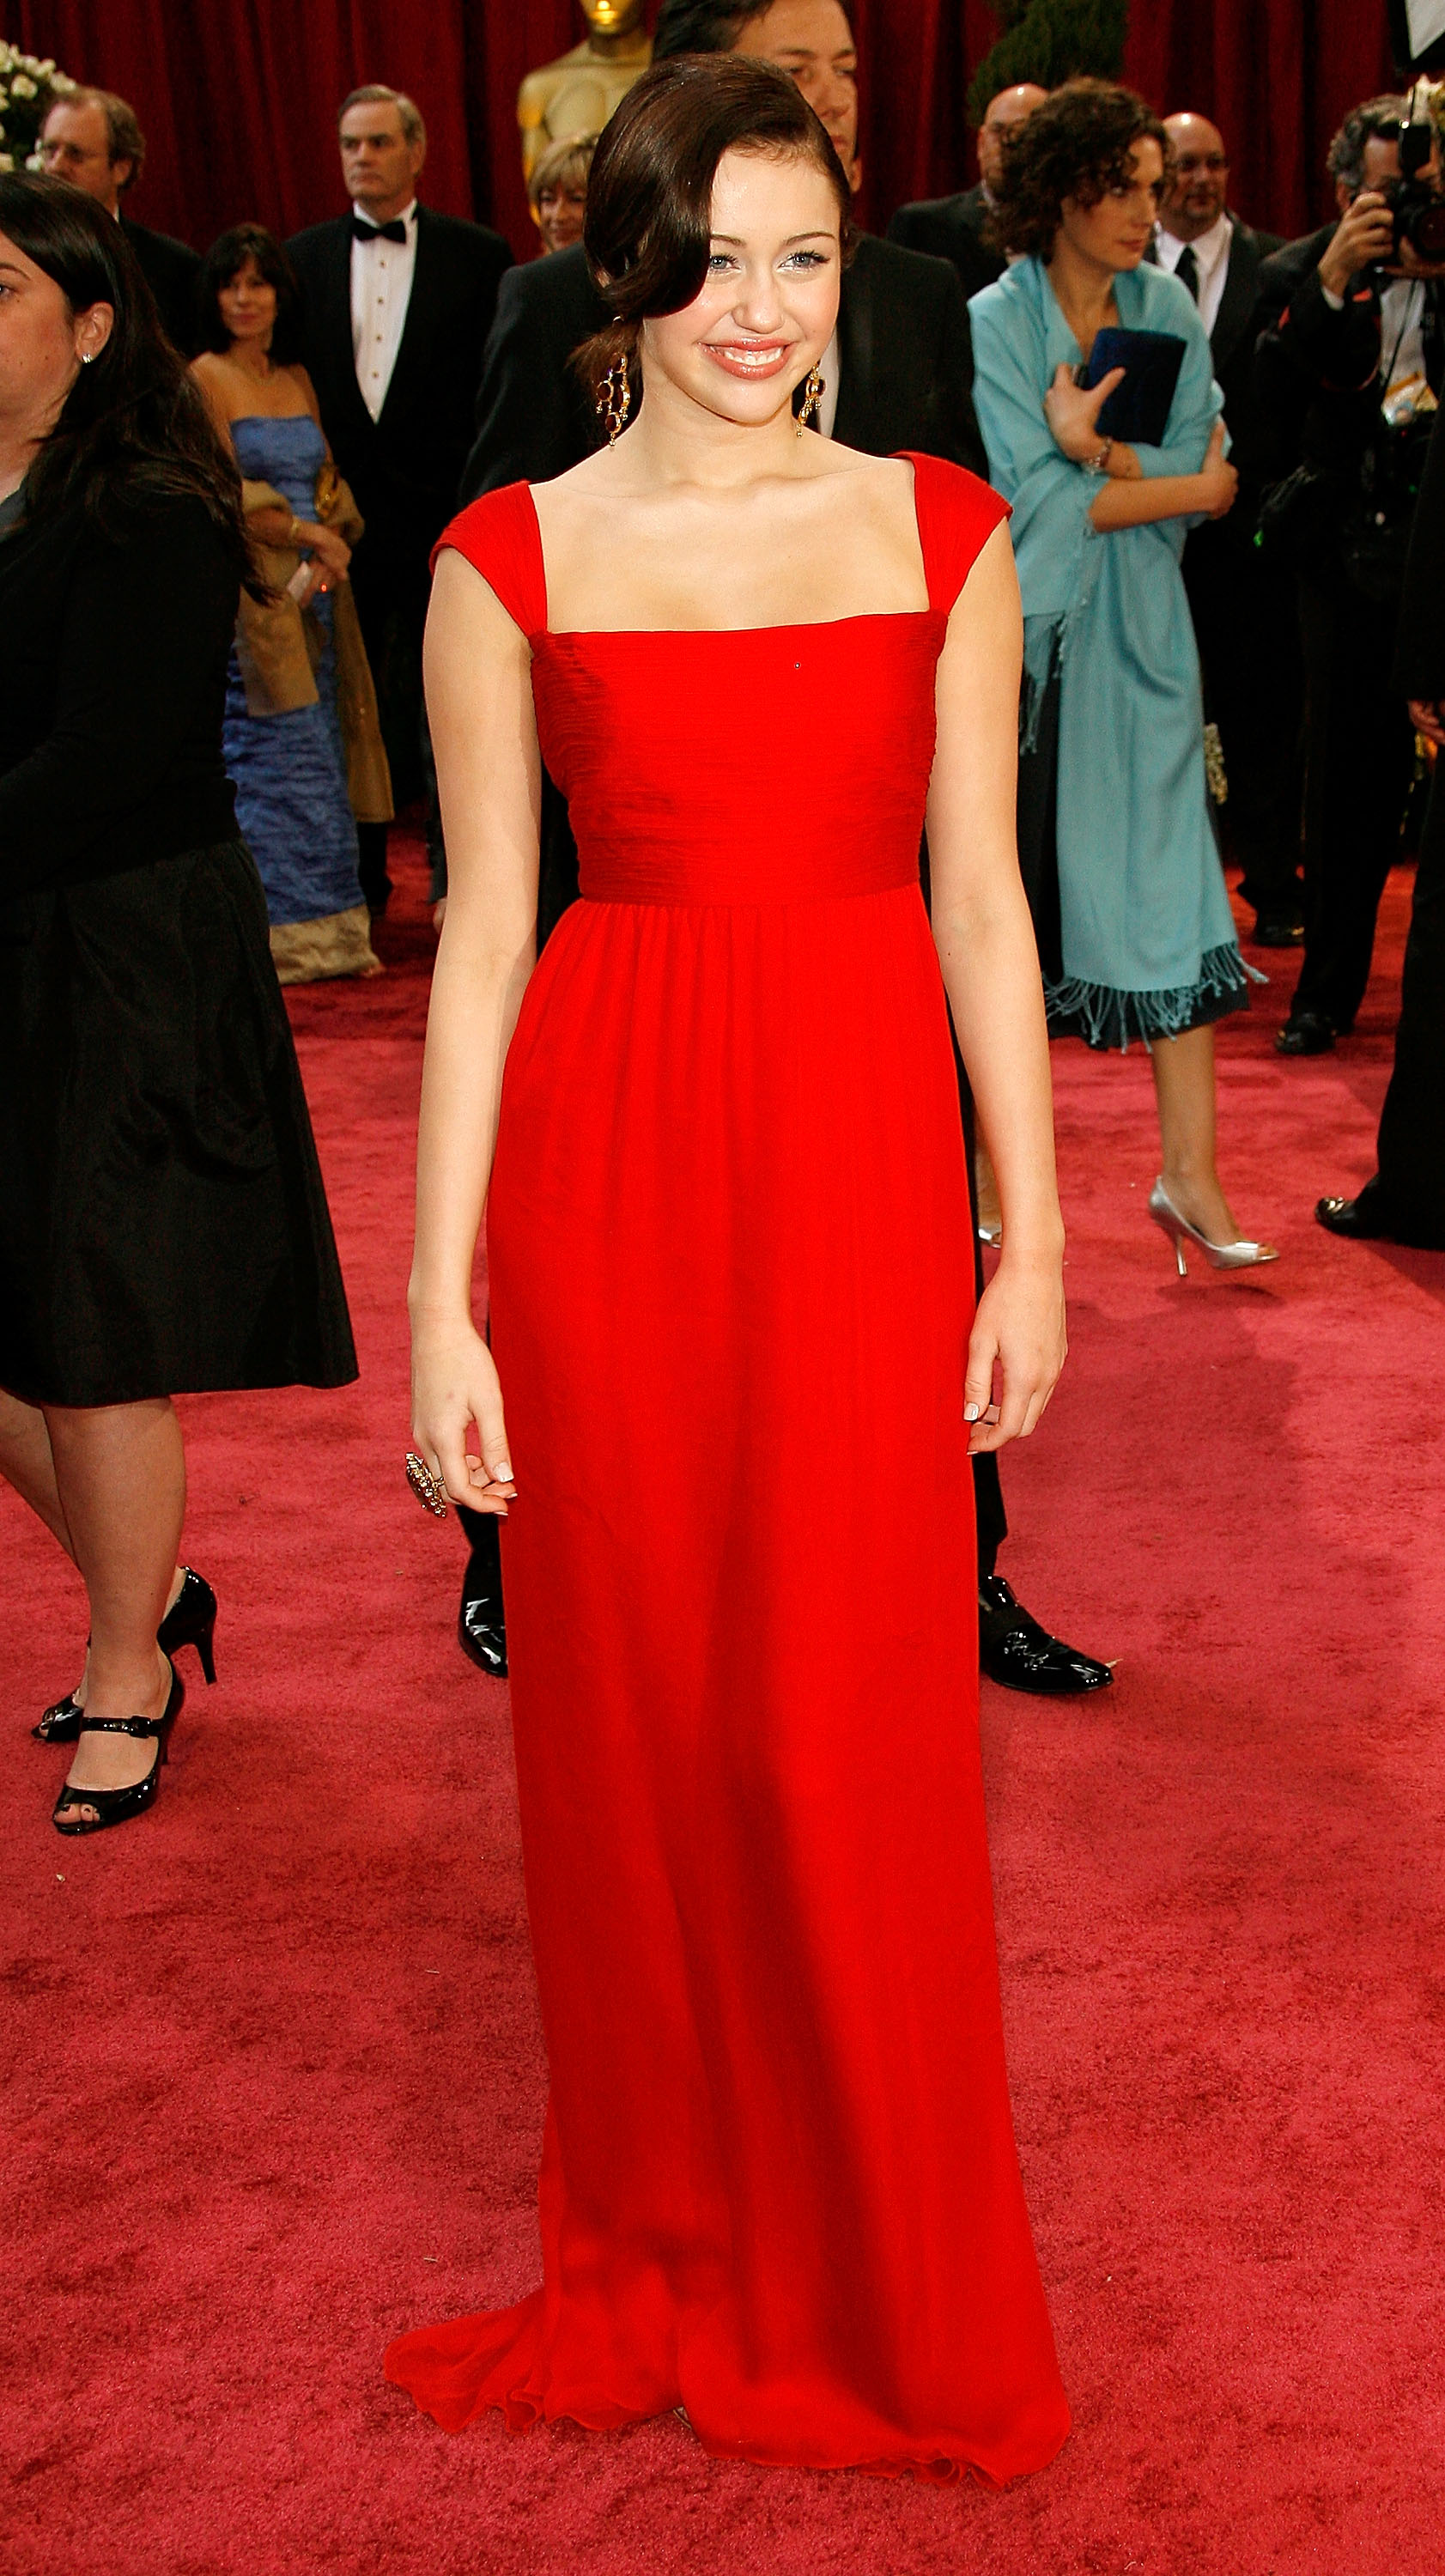 red dress on red carpet photo - 1